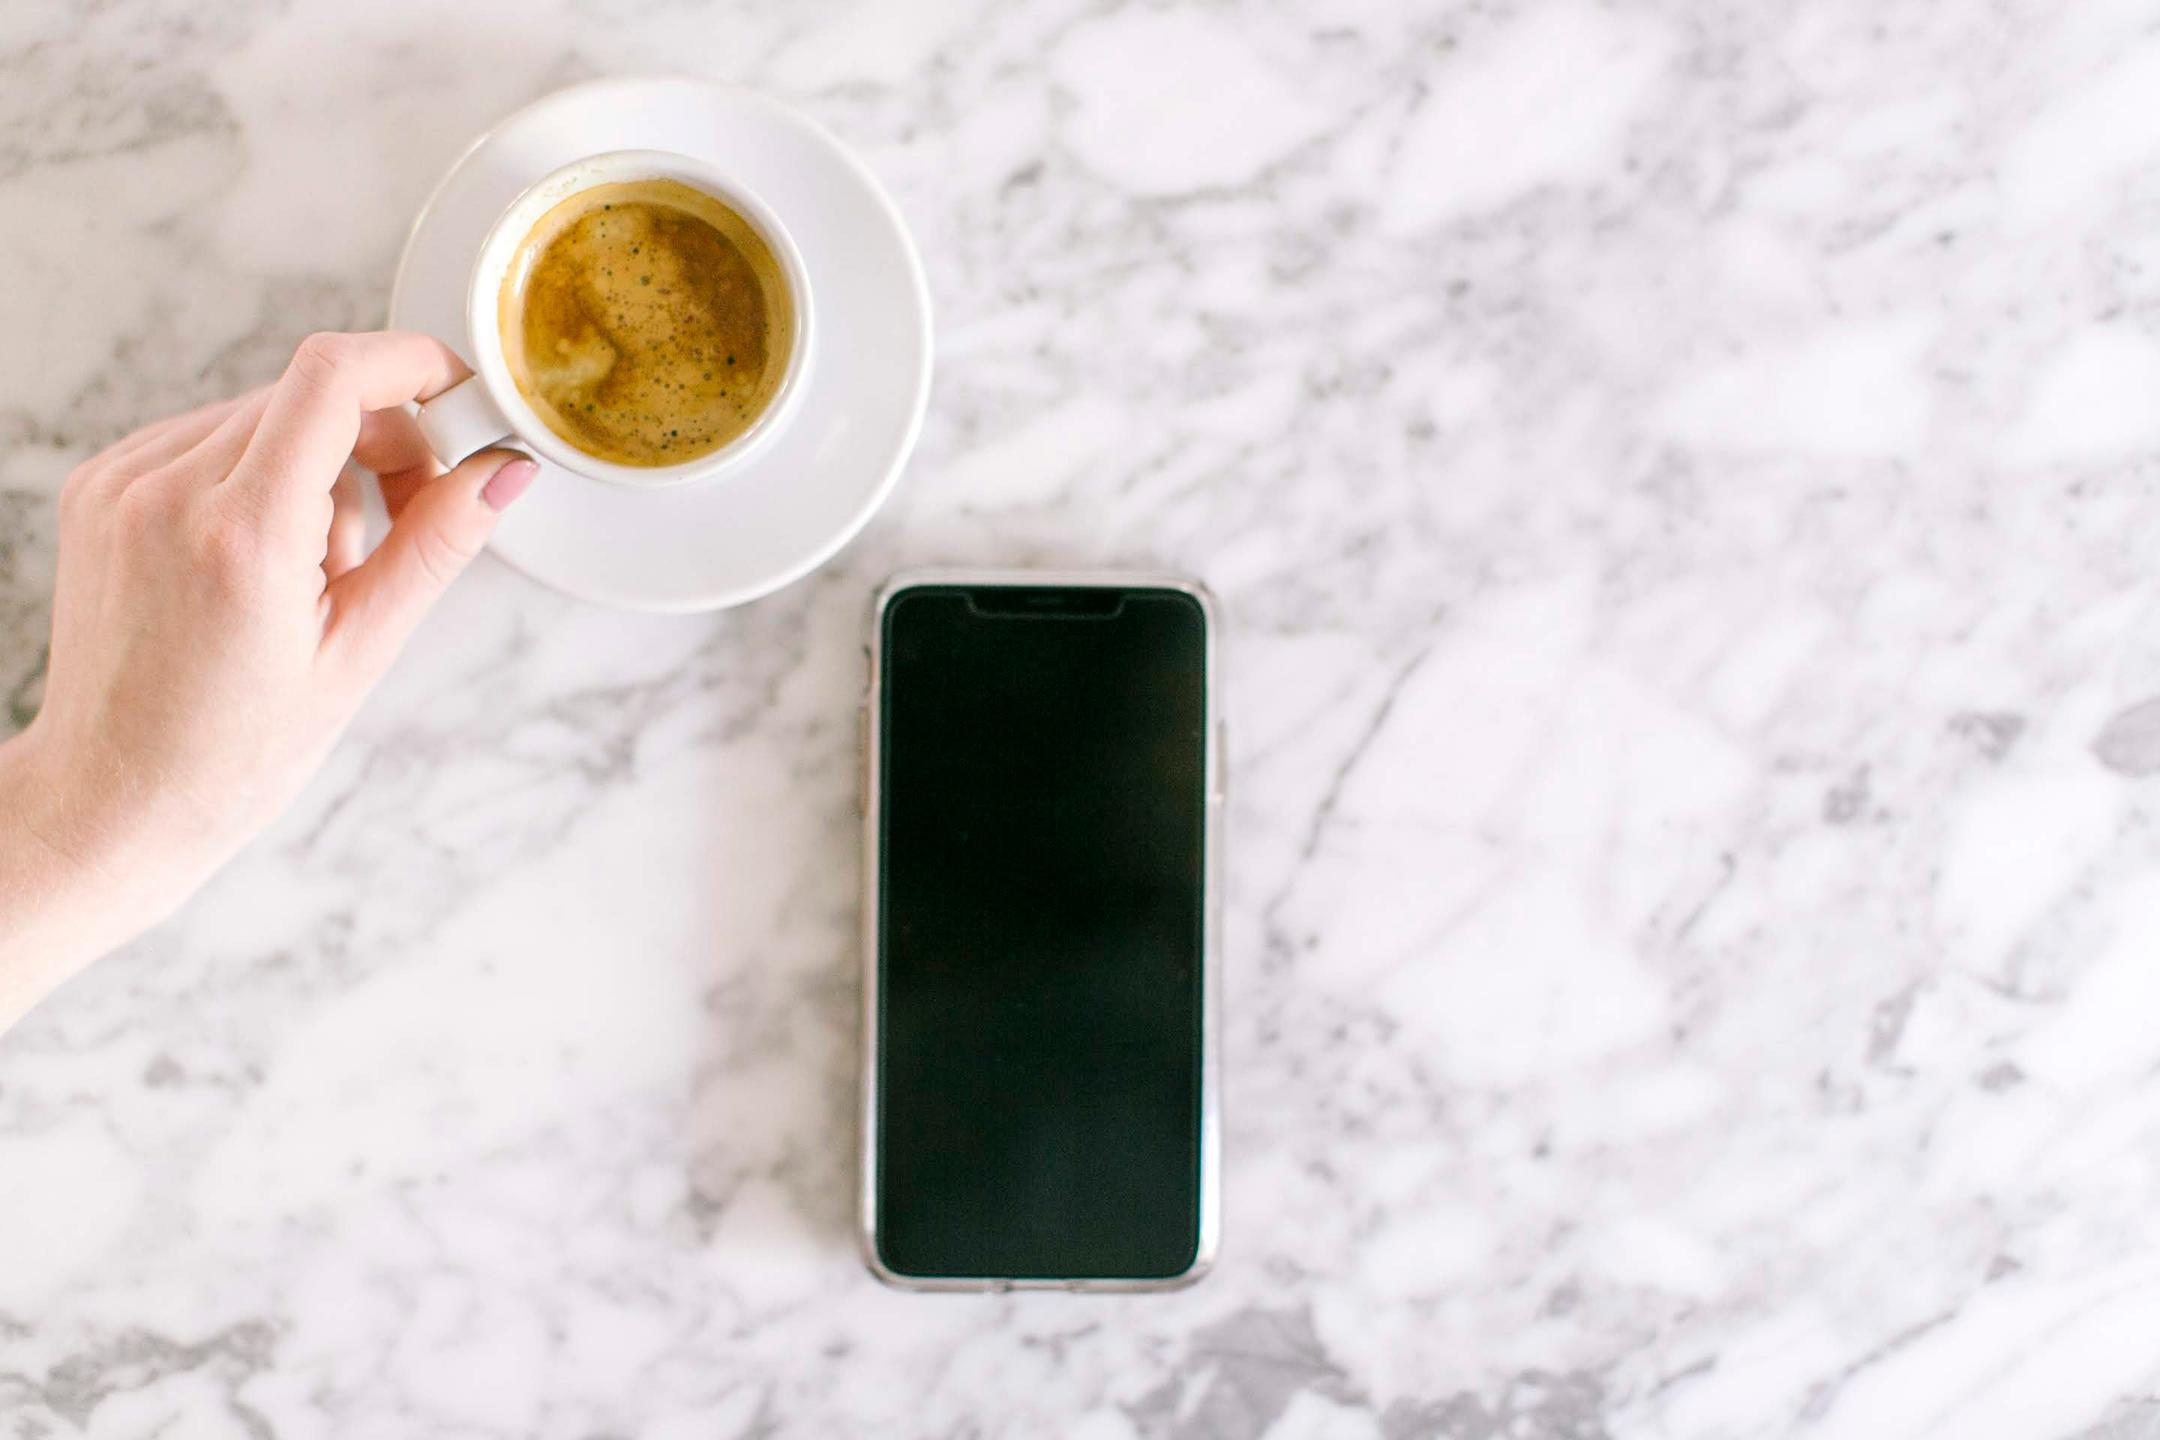 Cell phone and cup of coffee on marble countertop, hand reaching for coffee